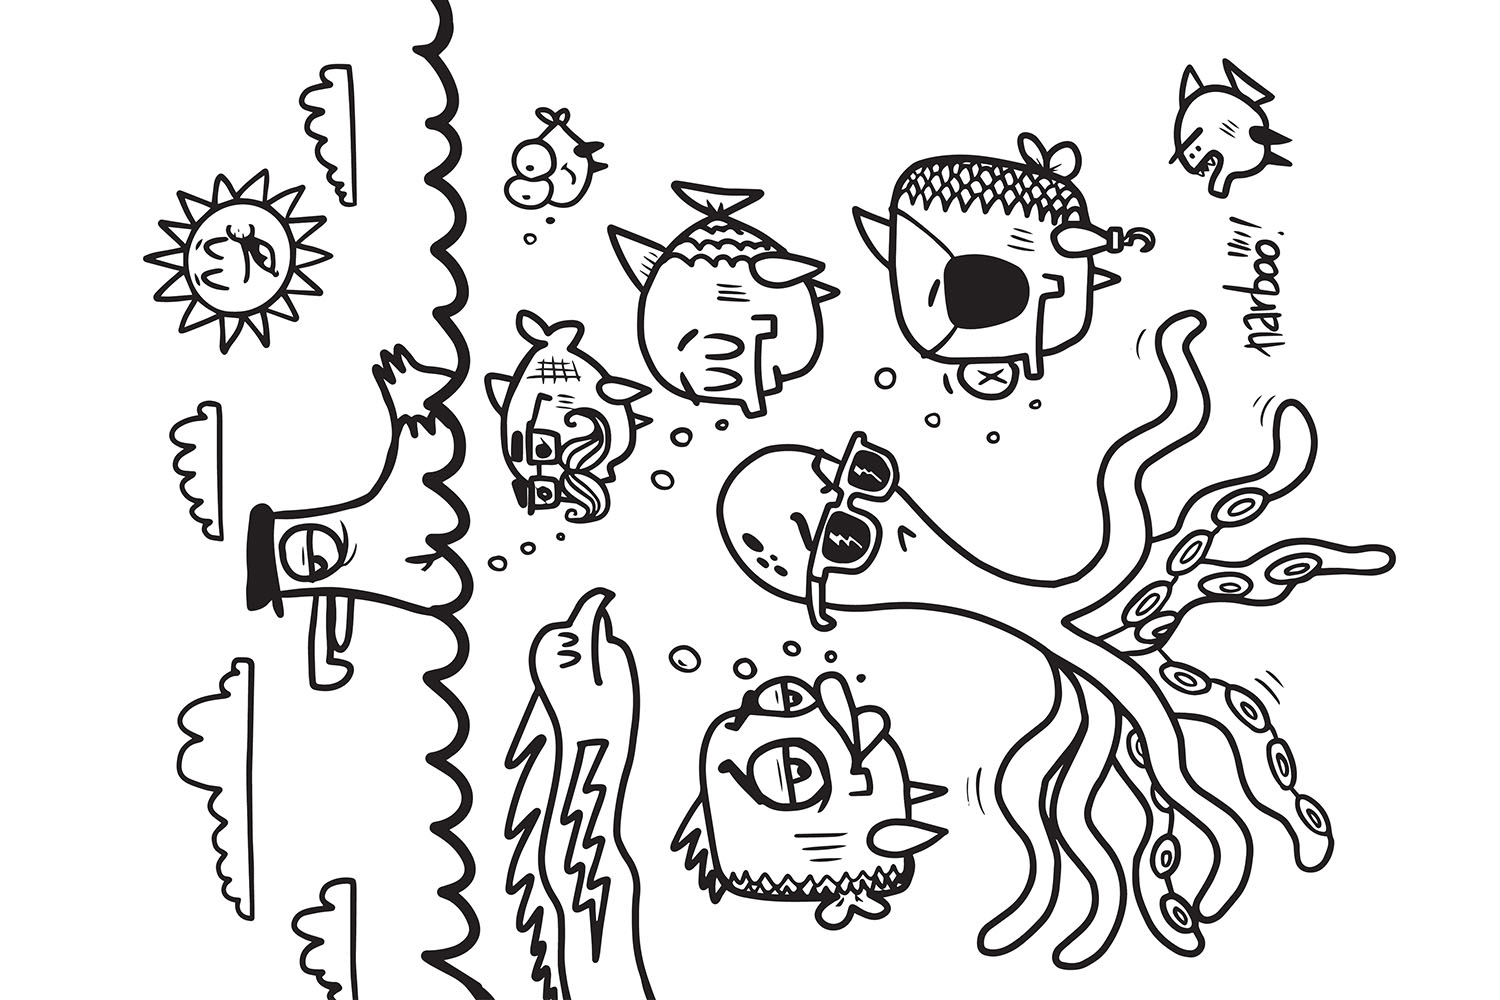 "Whether you're looking for something other than Netflix to do or something to keep your little ones entertained, what better way to pass the time than to color?! Artists in Seattle have created free coloring pages you can download and print right at home! You can not only get to know some local artists but also keep your mind engaged in a different way during quarantine. Pages can be downloaded from{&nbsp;}<a  href=""https://stayinsidethelines.co/"" target=""_blank"">stayinsidethelines.co</a>. Make sure to tag{&nbsp;}<a  href=""https://www.instagram.com/Stayinsidethelinesseattle/"" target=""_blank"">@StayInsideTheLinesSeattle{&nbsp;}</a>and use{&nbsp;}<a  href=""https://www.instagram.com/explore/tags/stayinsidethelinessea/"" target=""_blank"">#STAYINSIDETheLinesSEA{&nbsp;}</a>when posting to social media! (Image:{&nbsp;}@Narboo)"